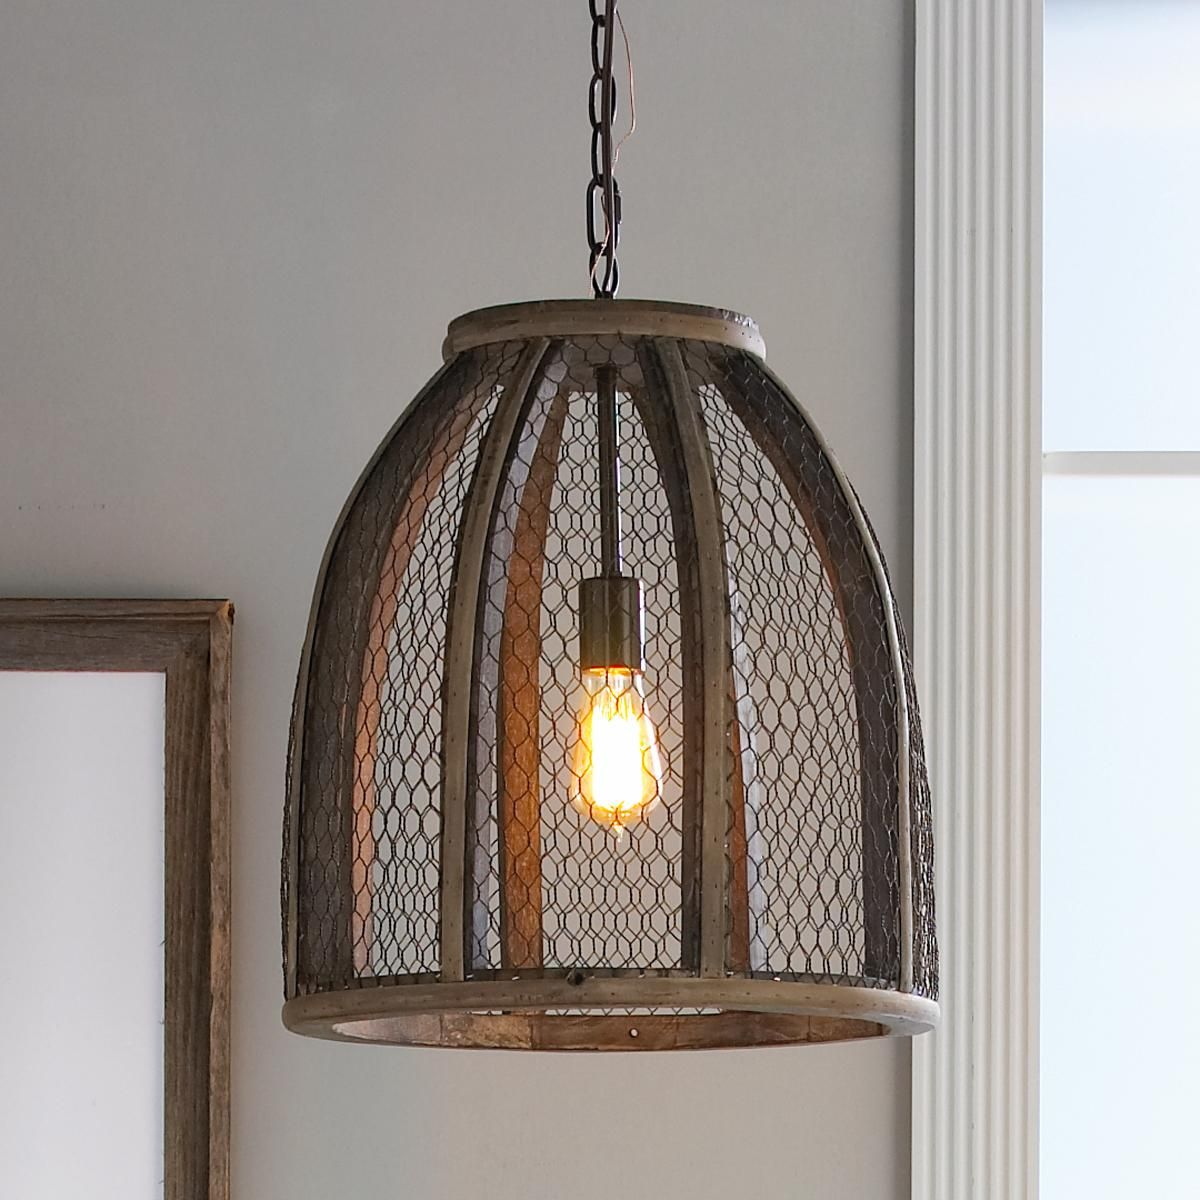 Chicken wire pendant light large chicken wire pendant chicken wire pendant light large aloadofball Gallery